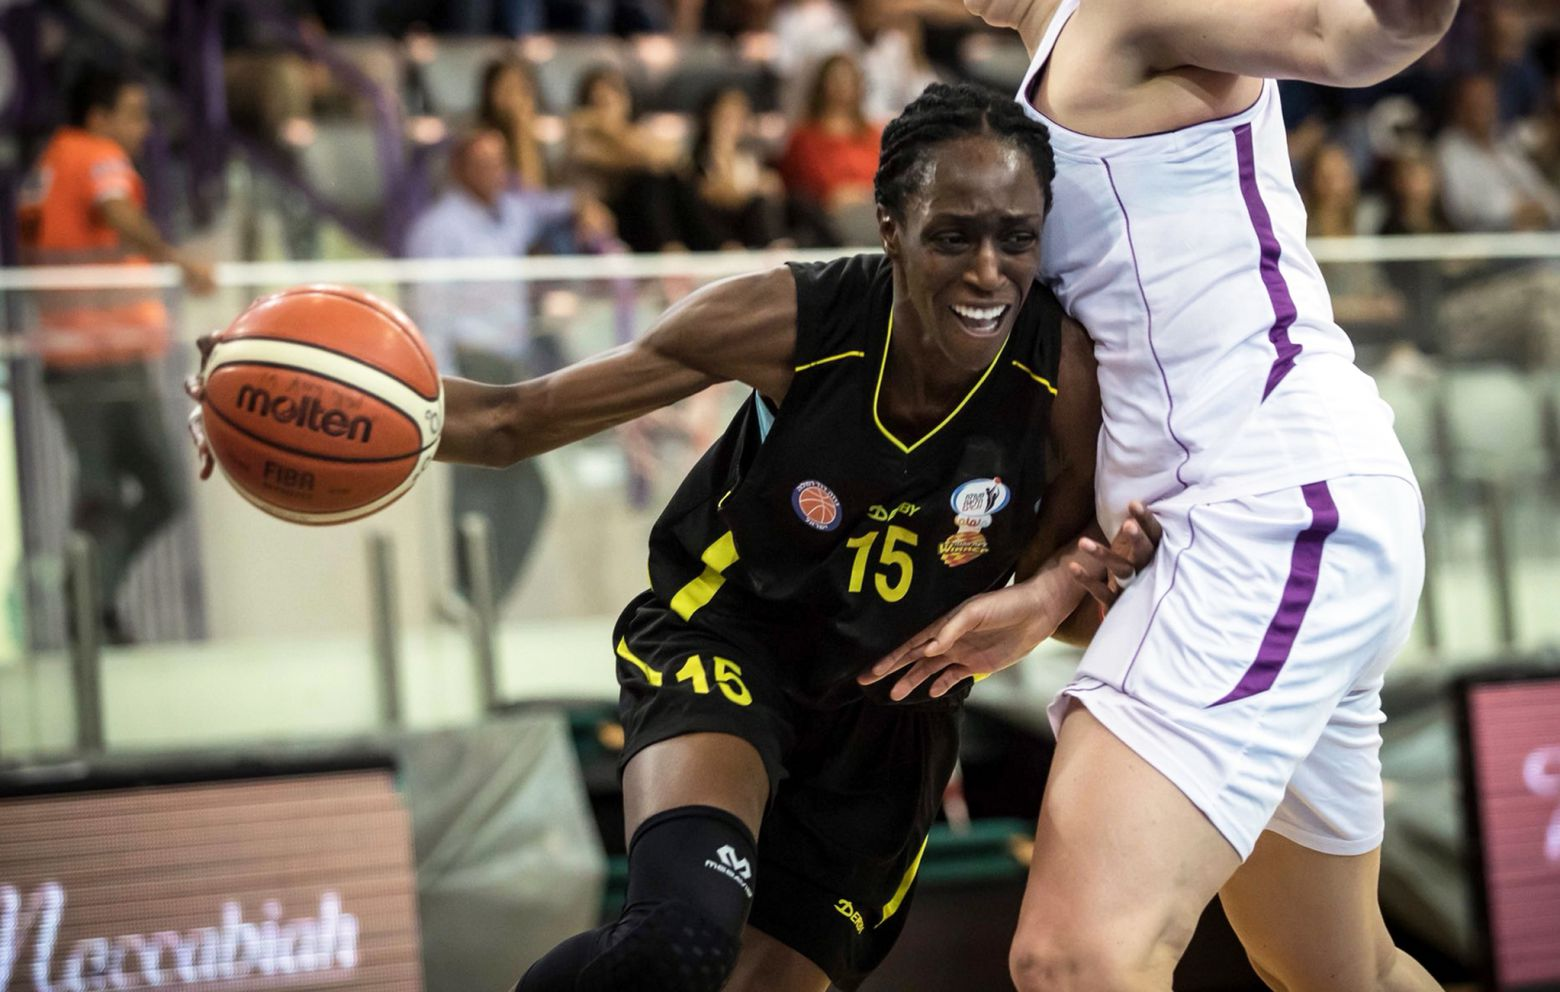 IFY IBEKWE has signed with Kayseri